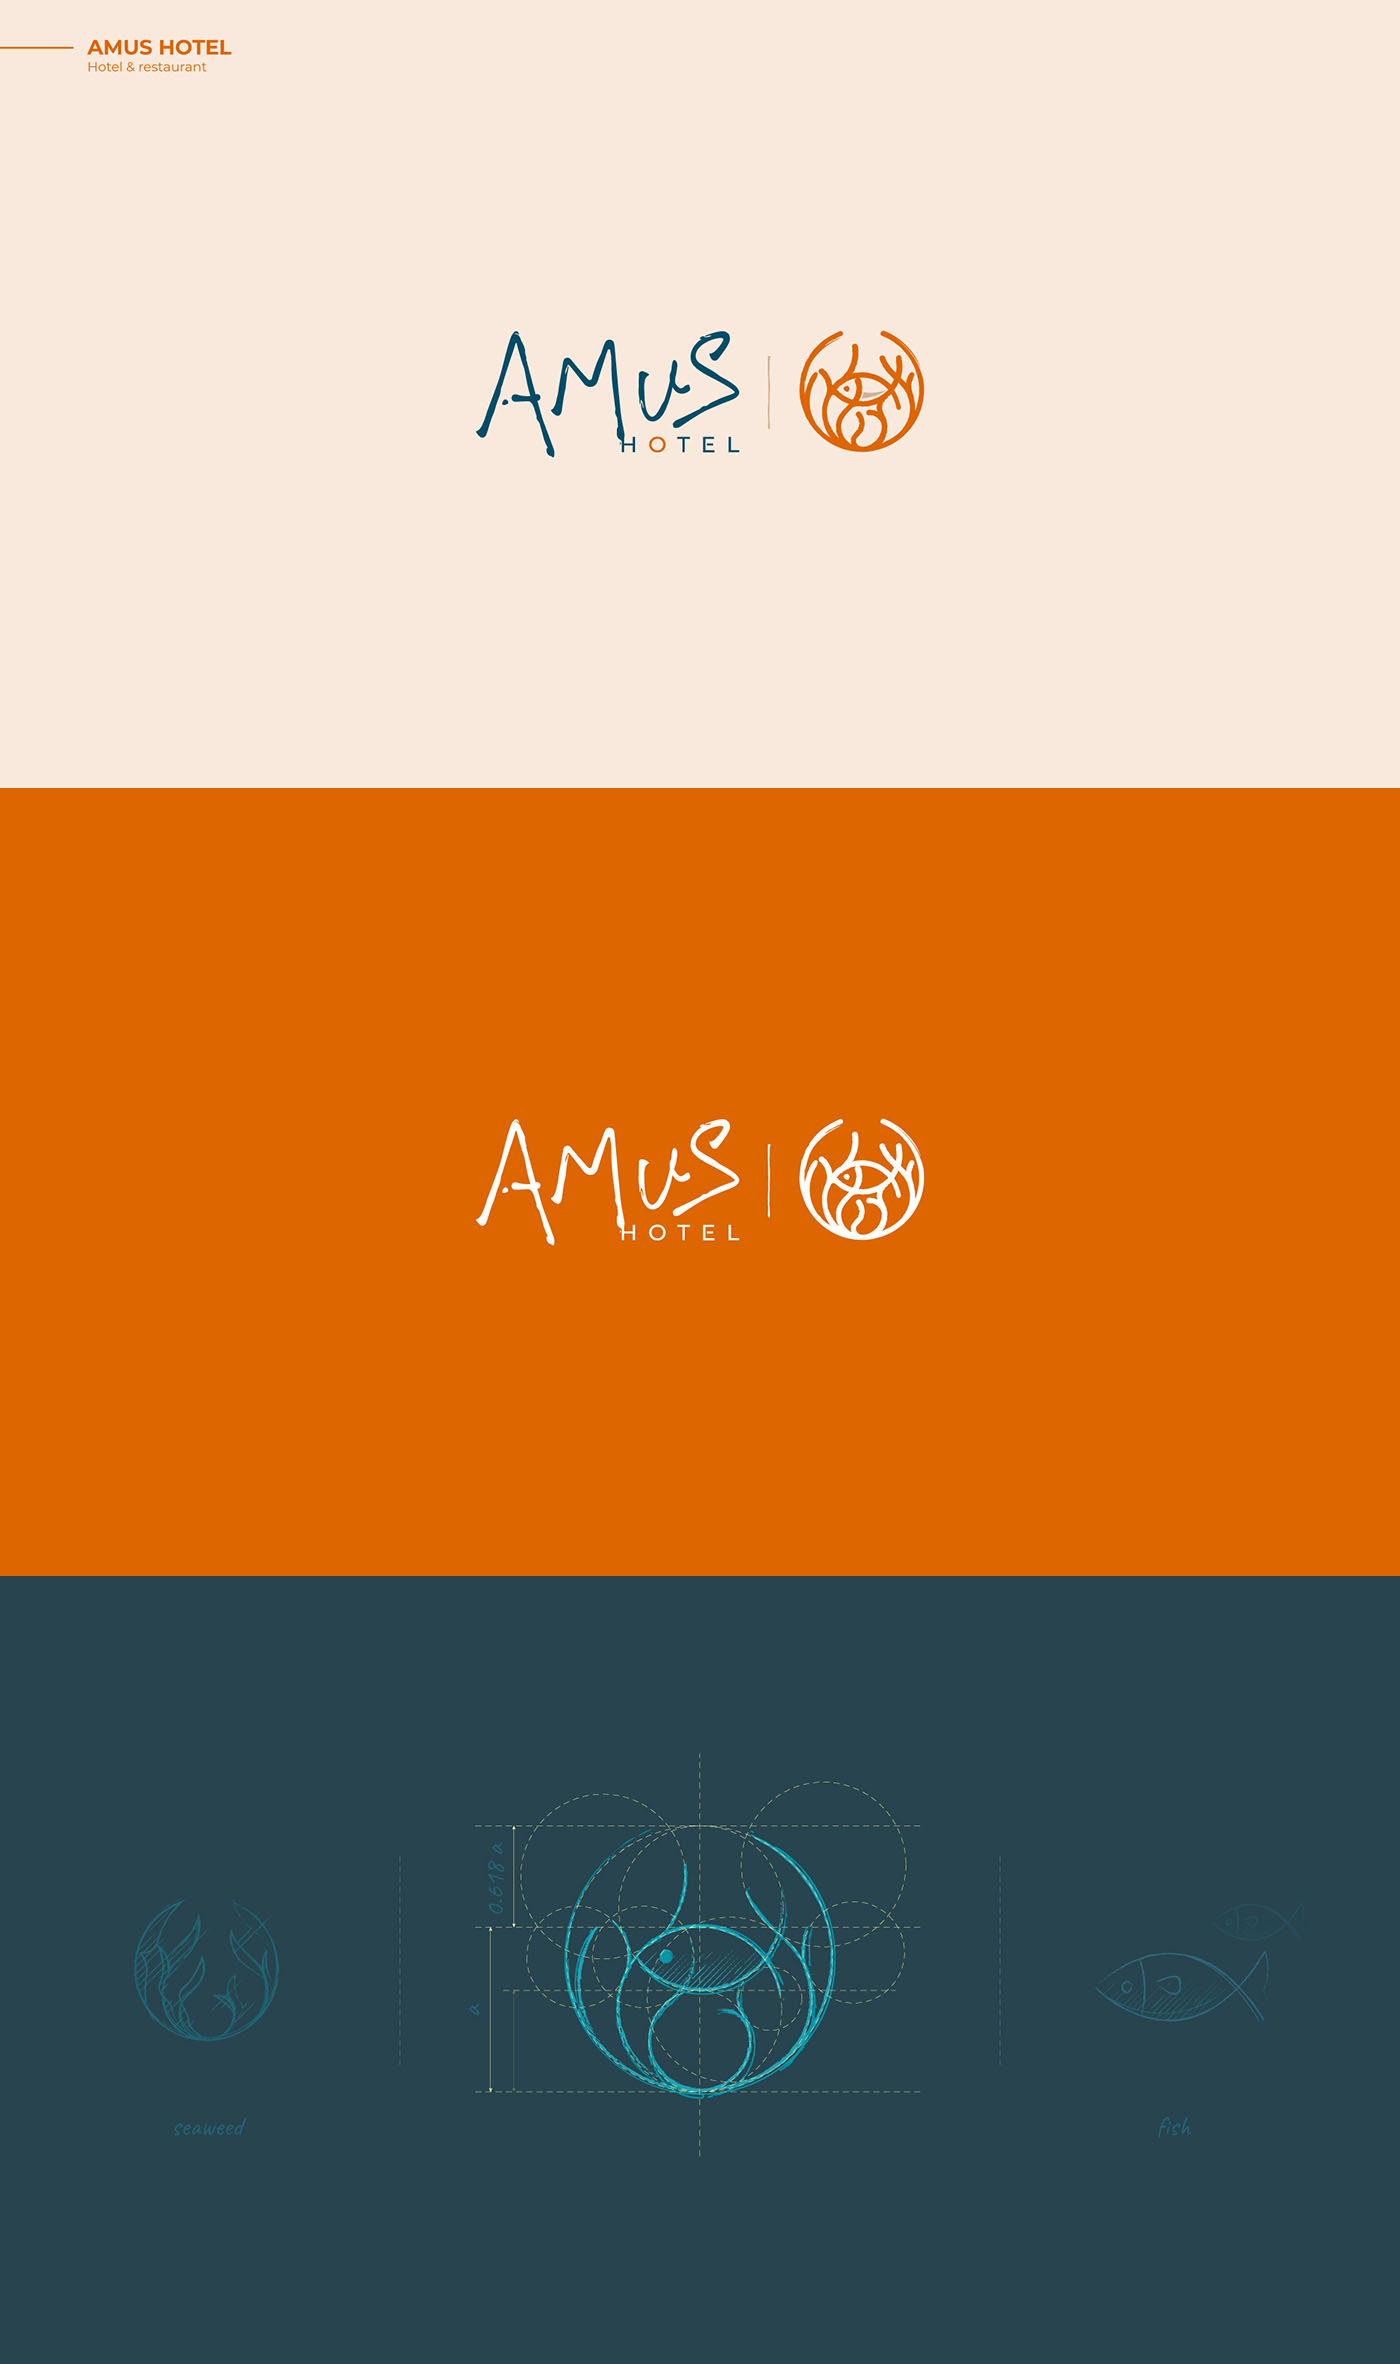 AMUS Hotel - Fish logo design